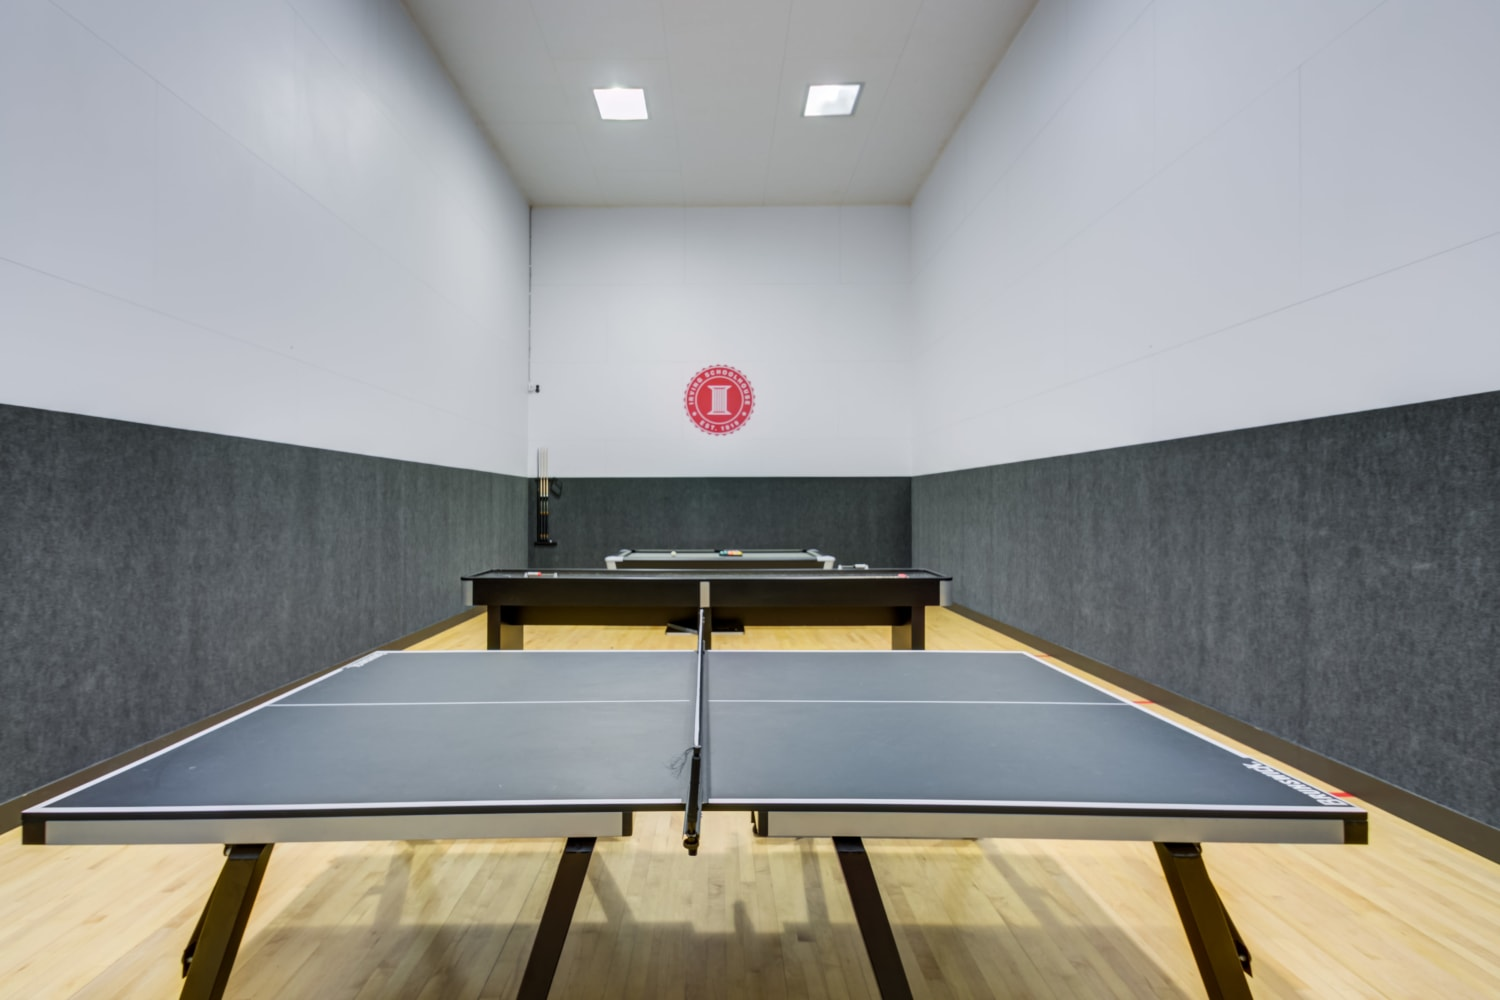 Ping pong table, shuffleboard and billiards table In the game room at Irving Schoolhouse Apartments in Salt Lake City, Utah